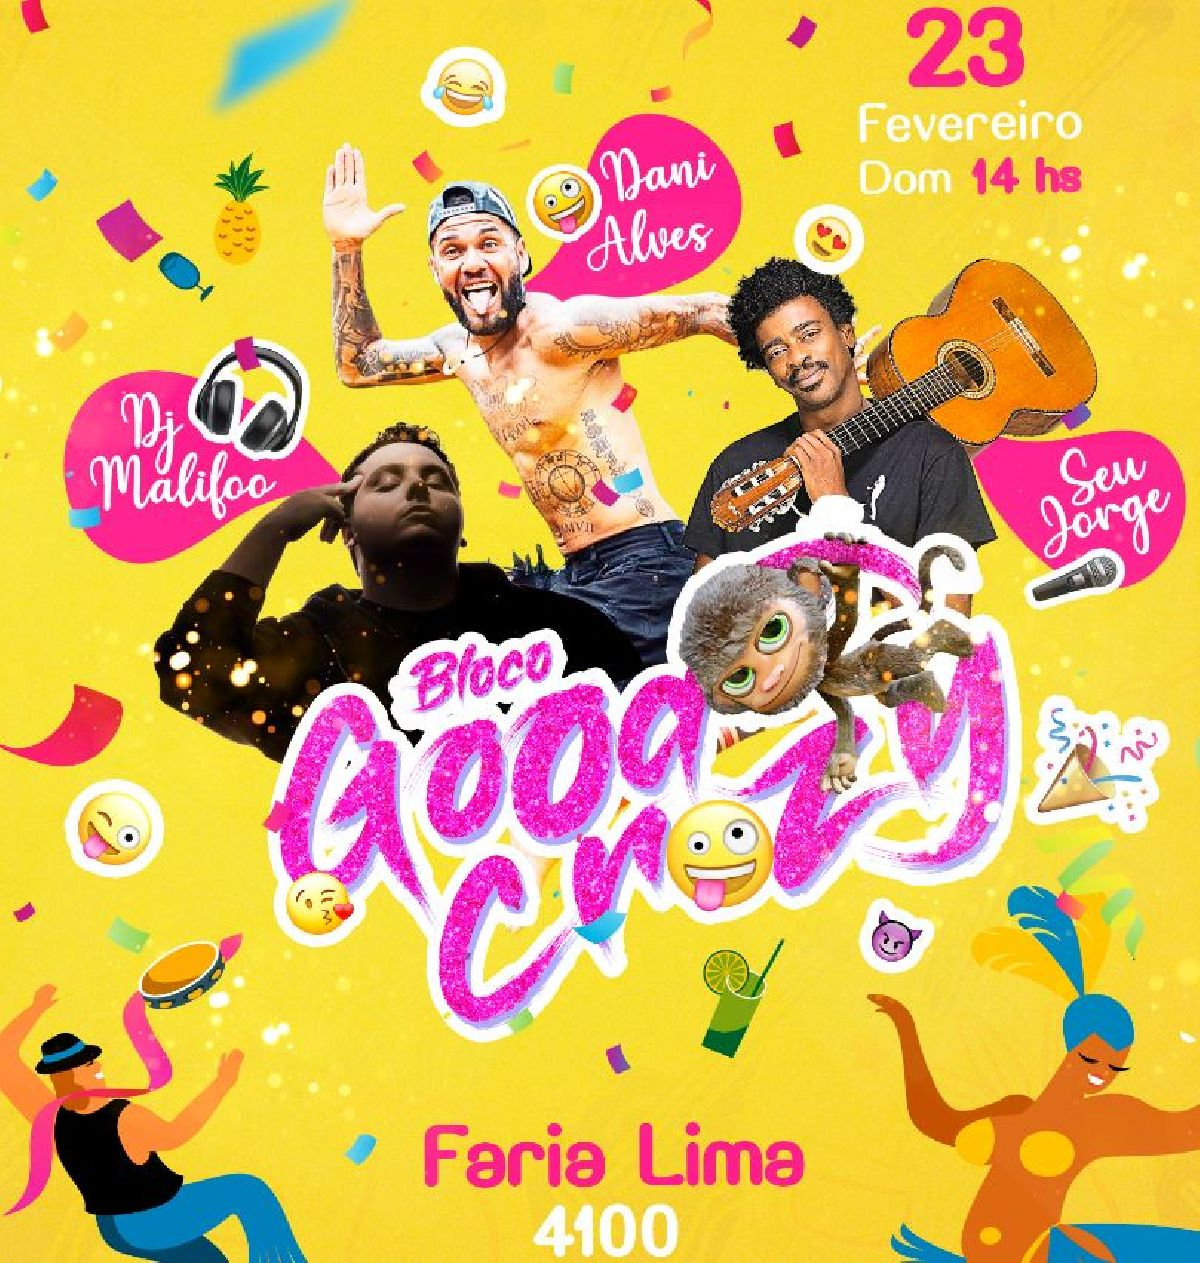 CARNAVAL 2020: BLOCO GOOD CRAZY